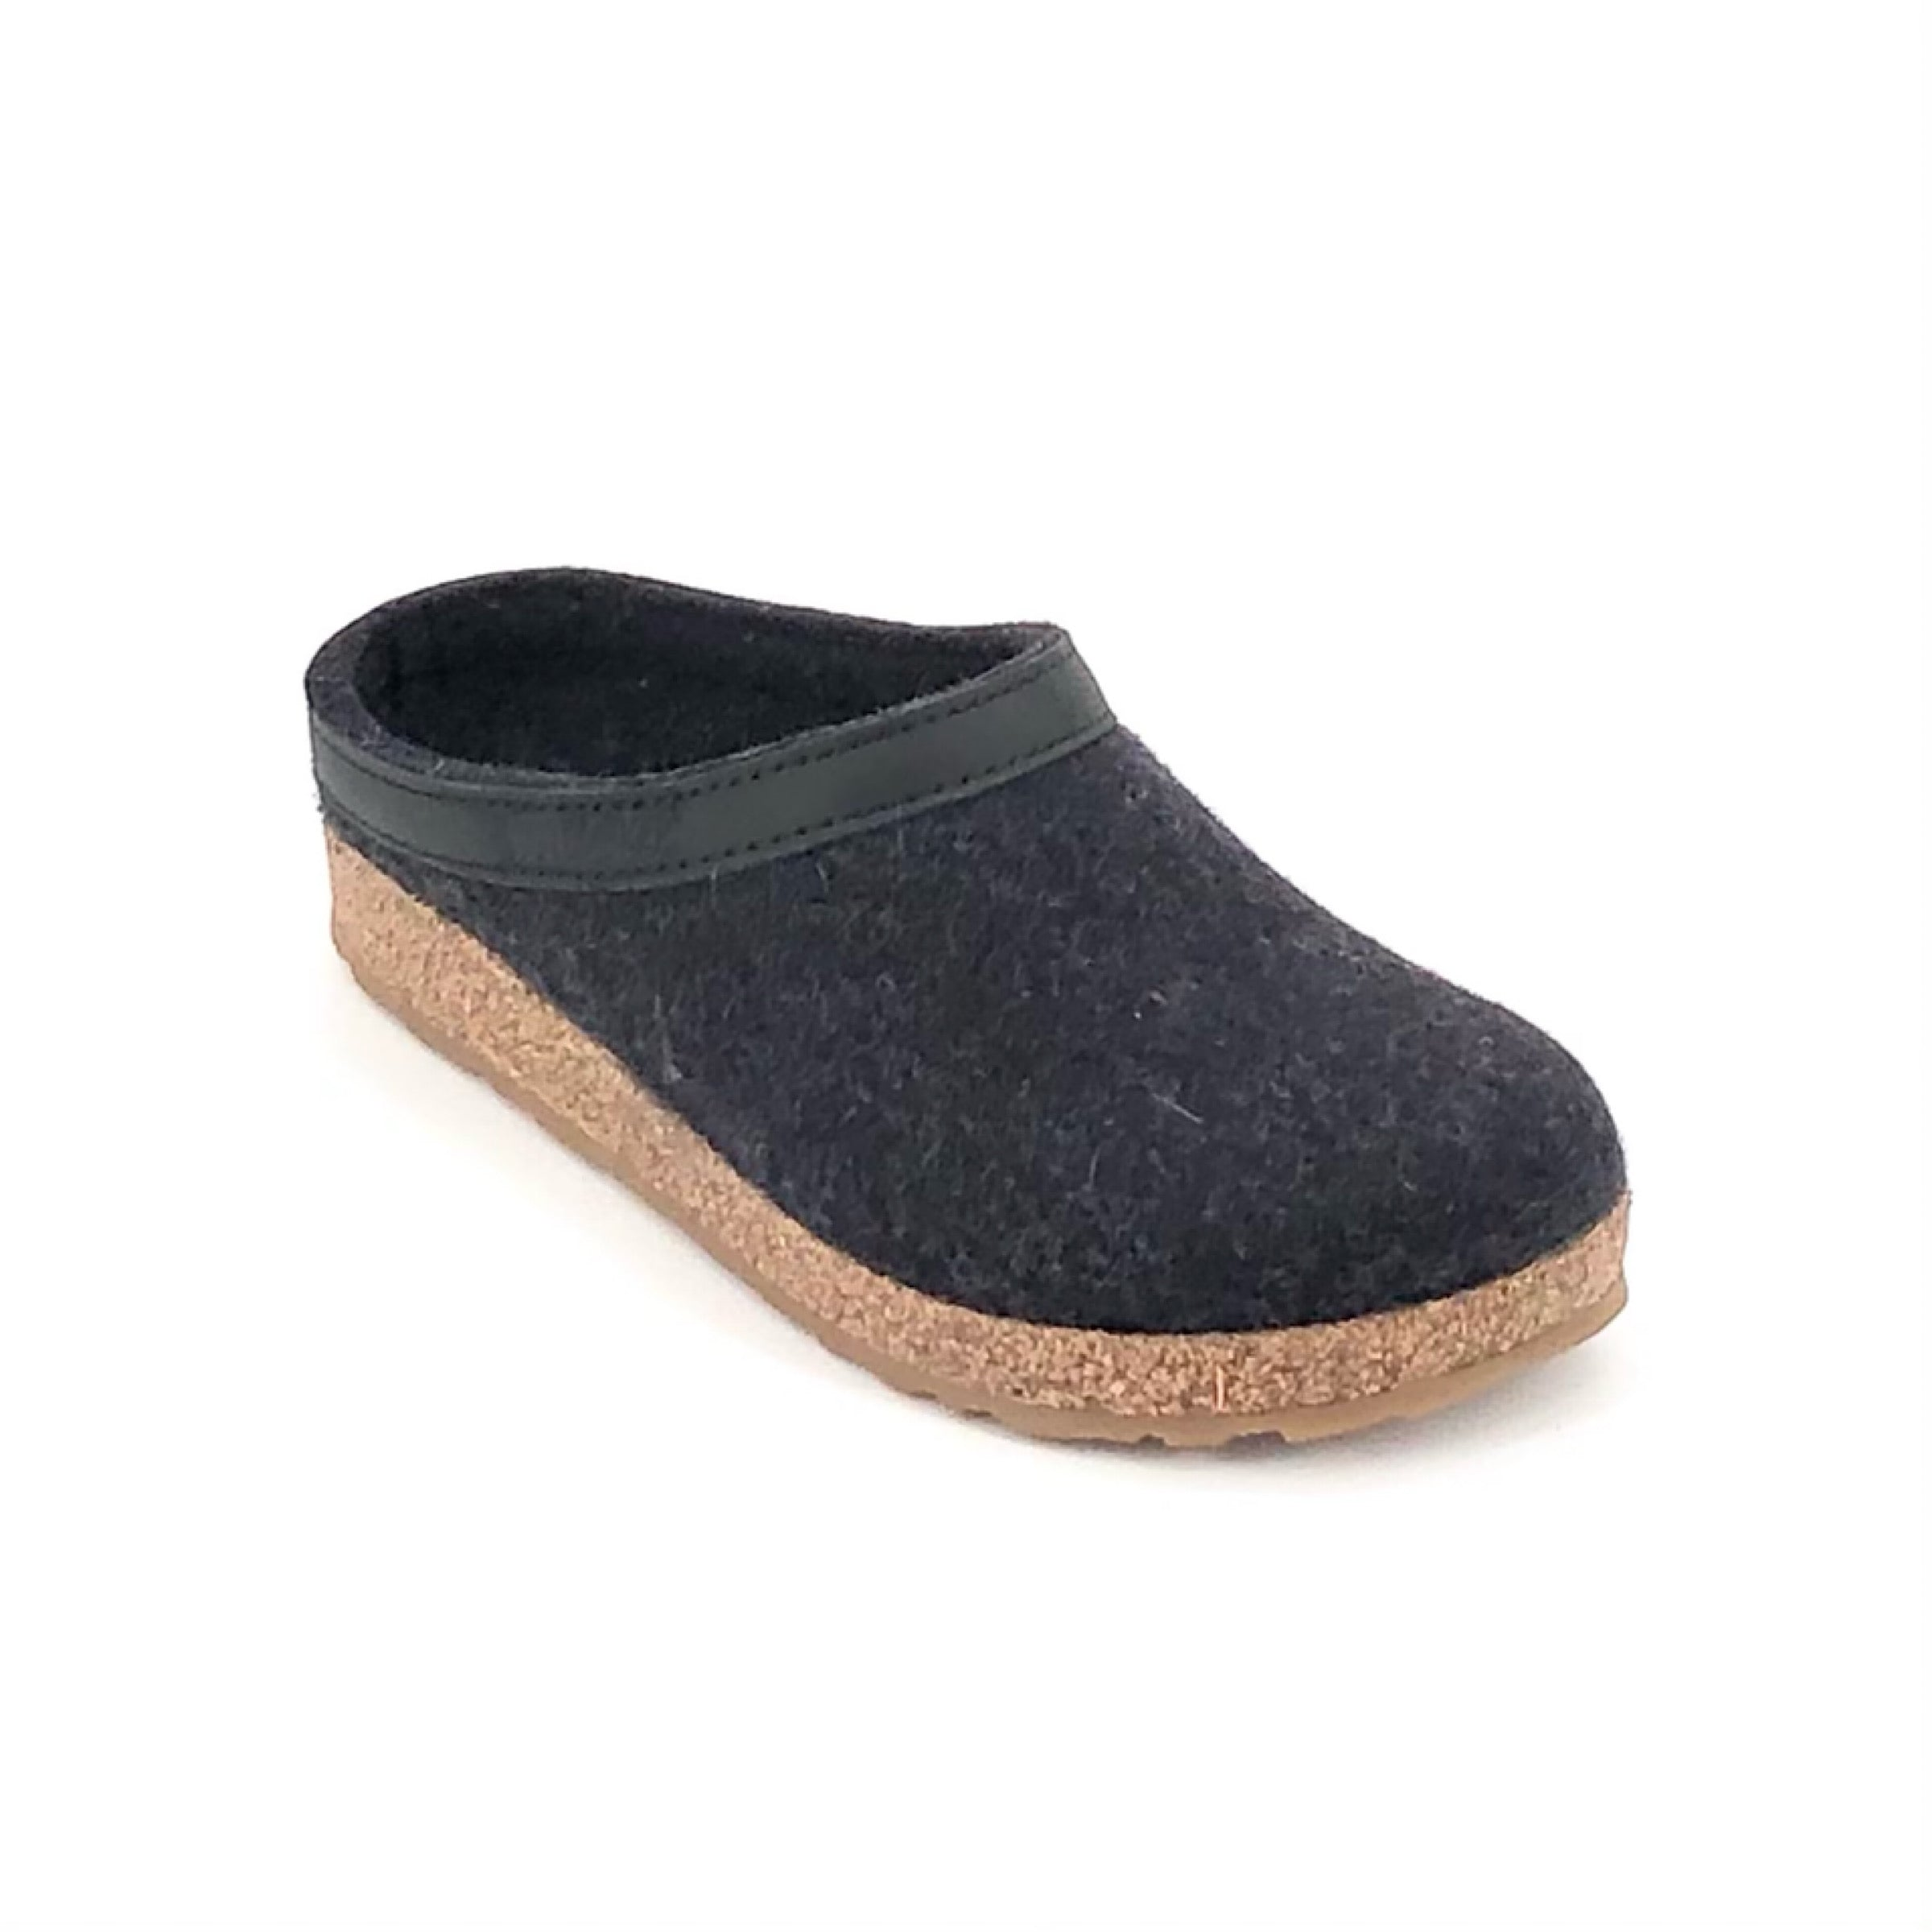 The Wool Clog with Leather Ribbon in Charcoal